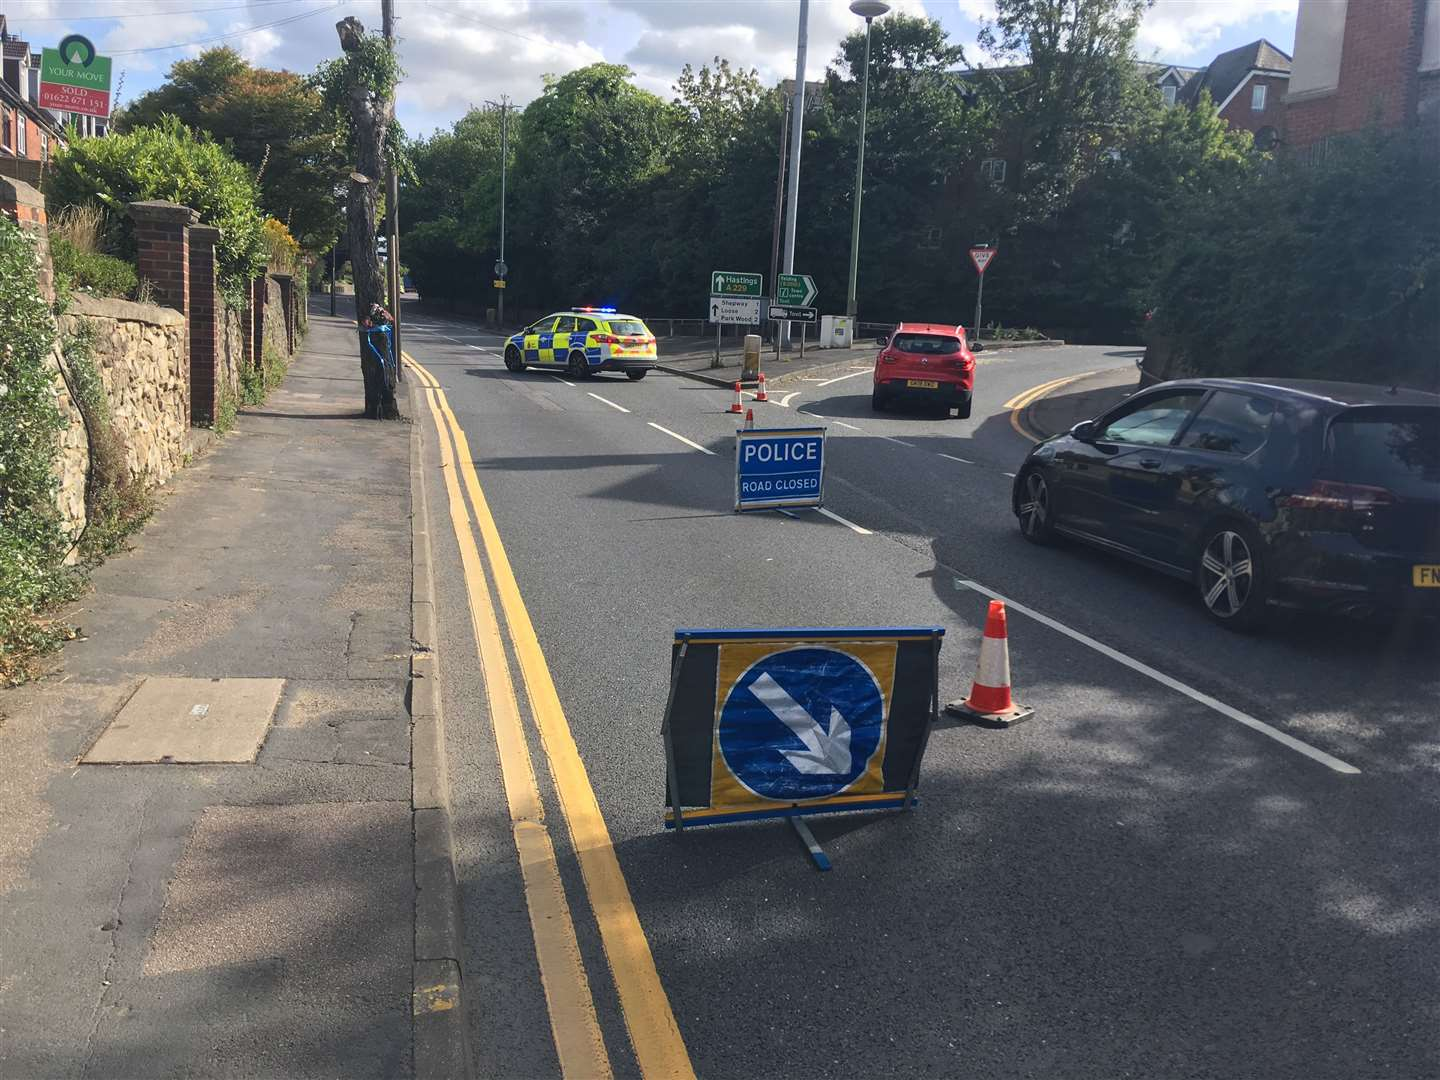 Kent Police have closed off Loose Road, Maidstone